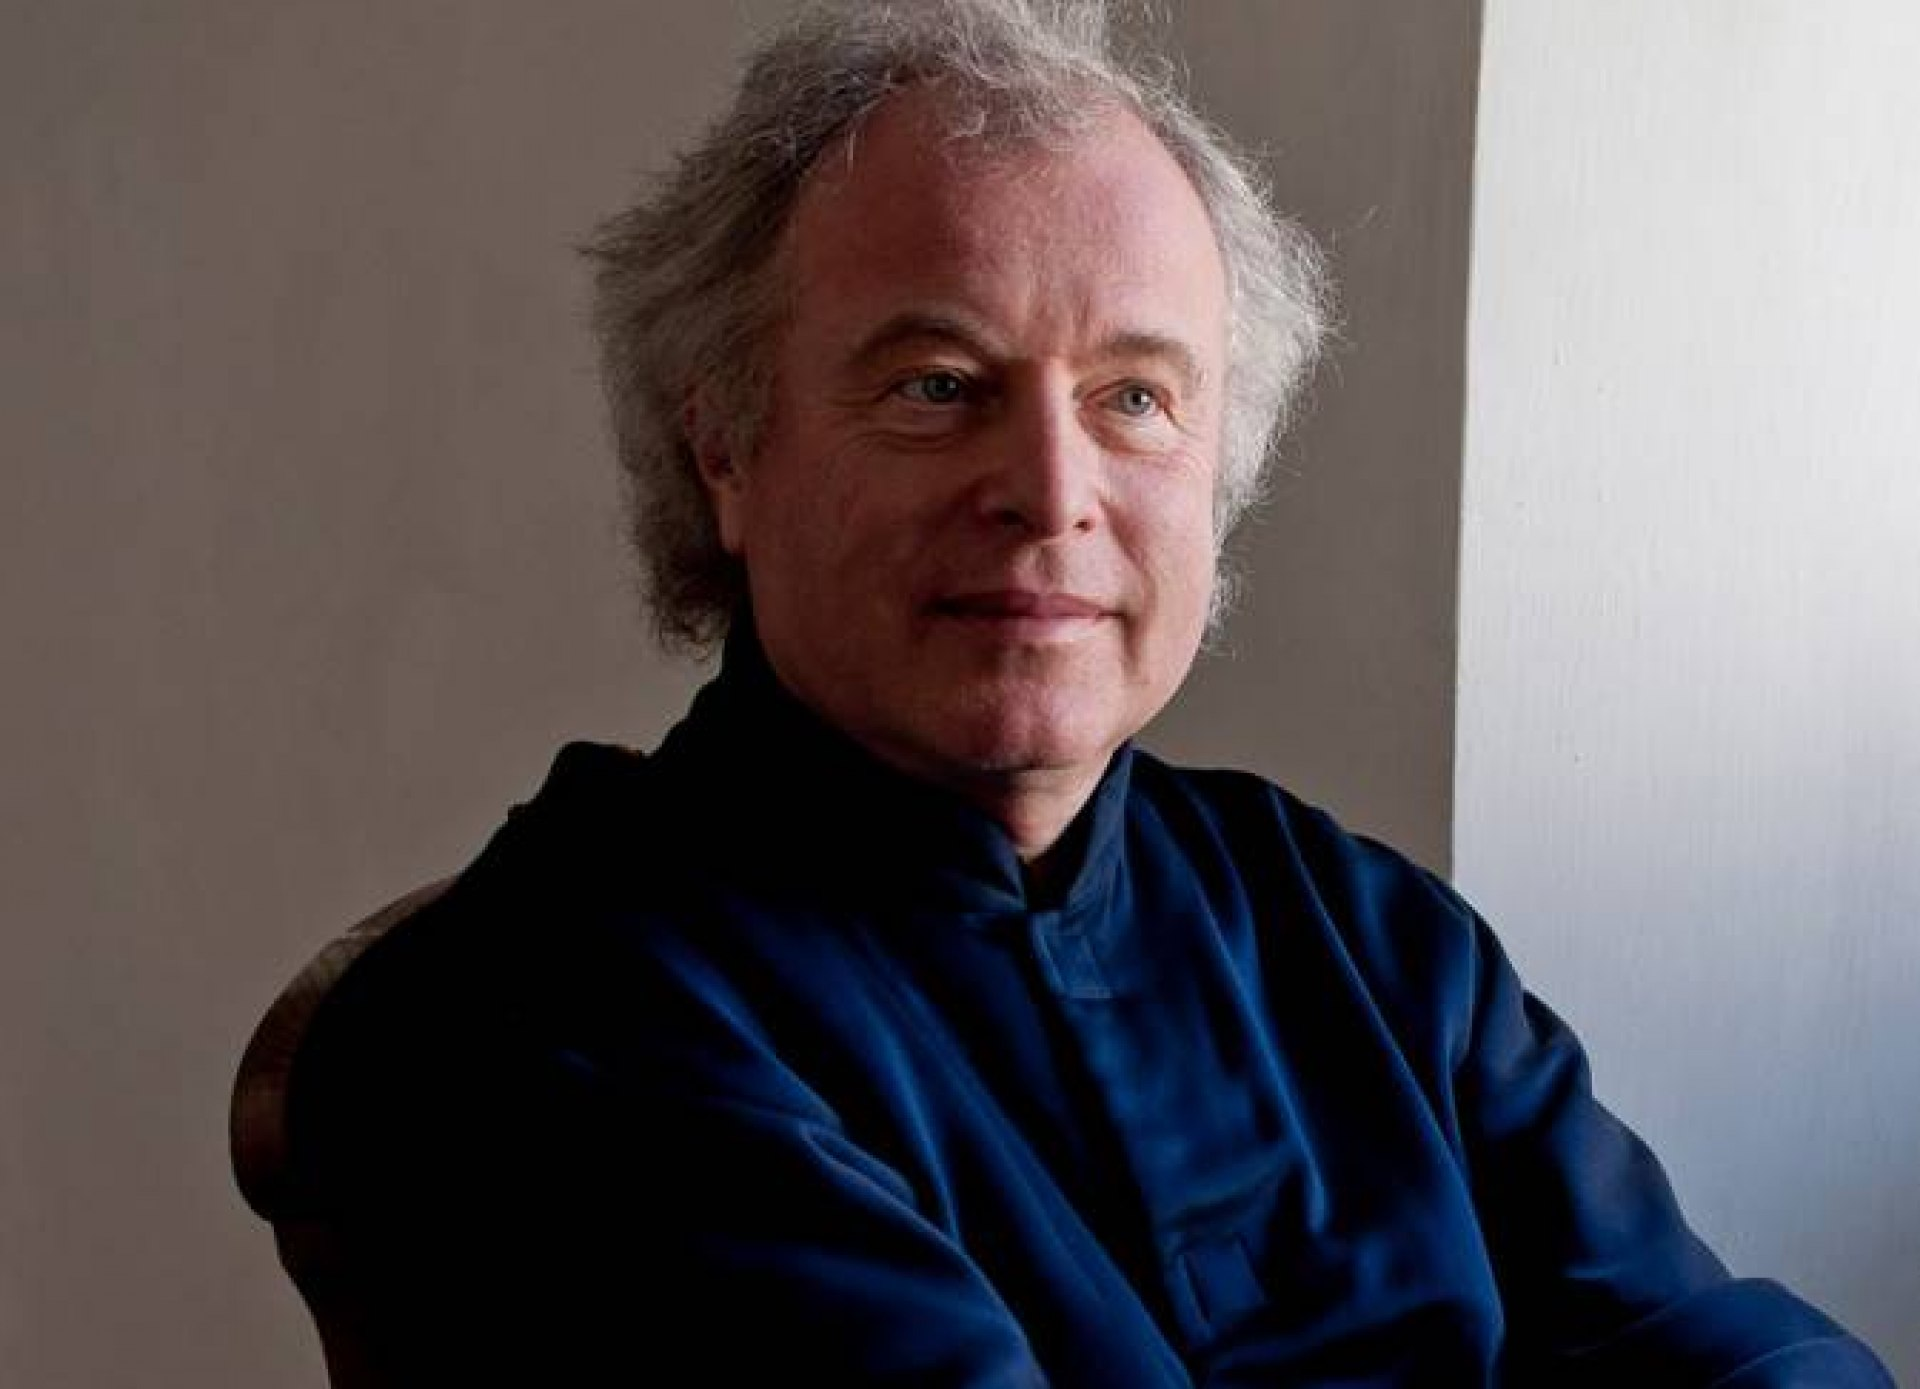 Sir András Schiff, Bach concerts